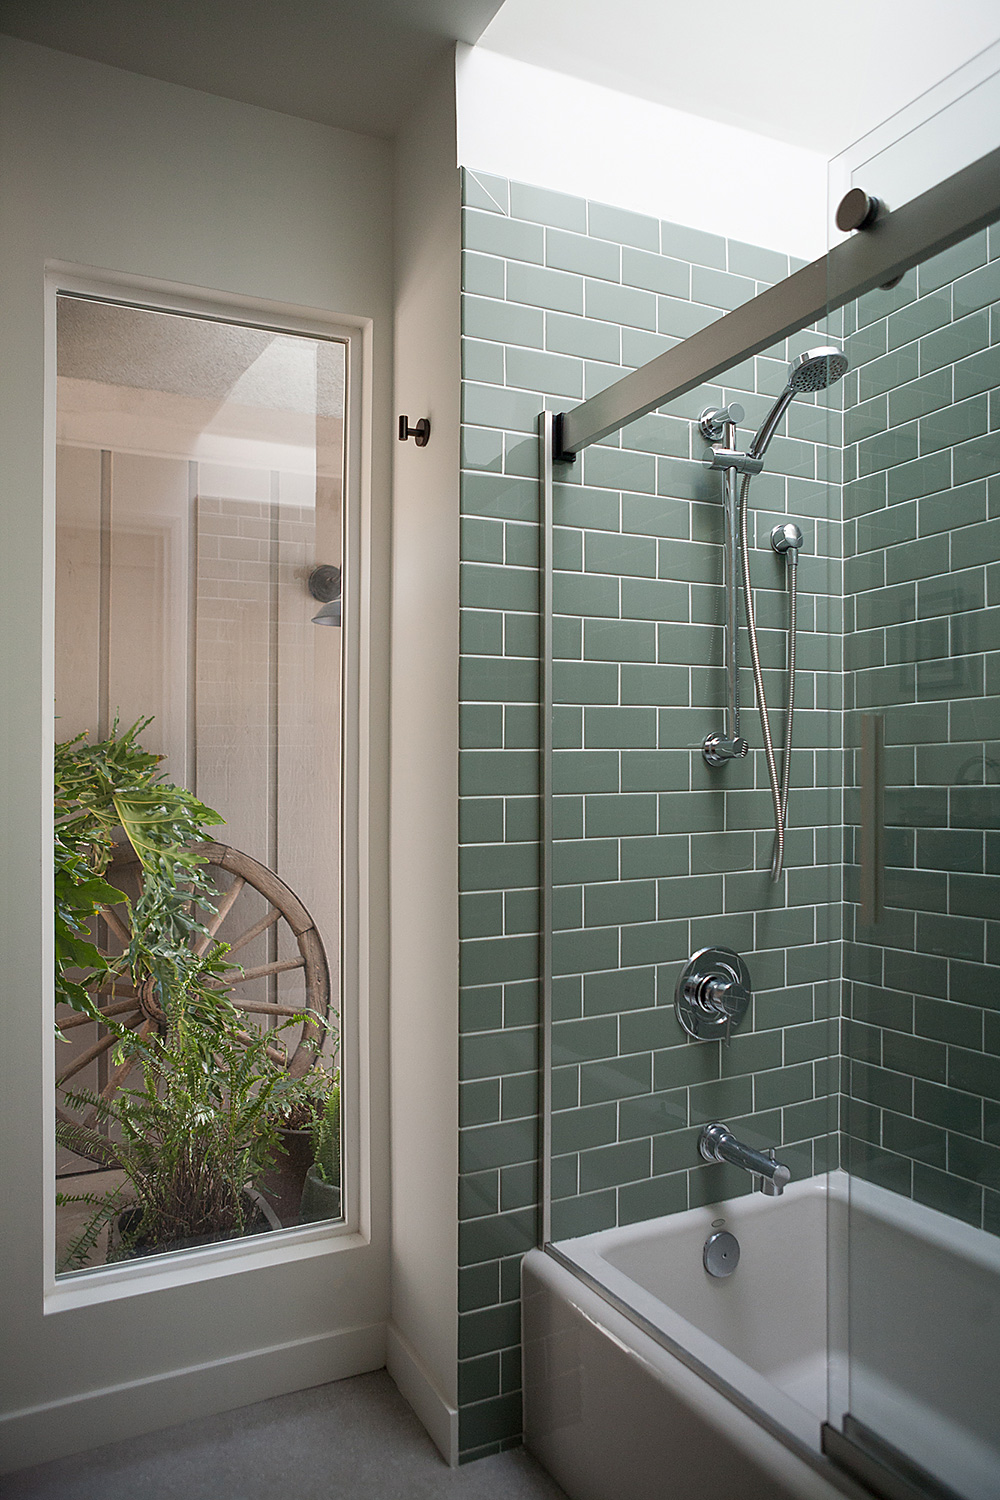 Remodeled bathroom with a natural color palette and views of a private plant atrium give calem & relaxation to your vacation home stay at the Kern River House.